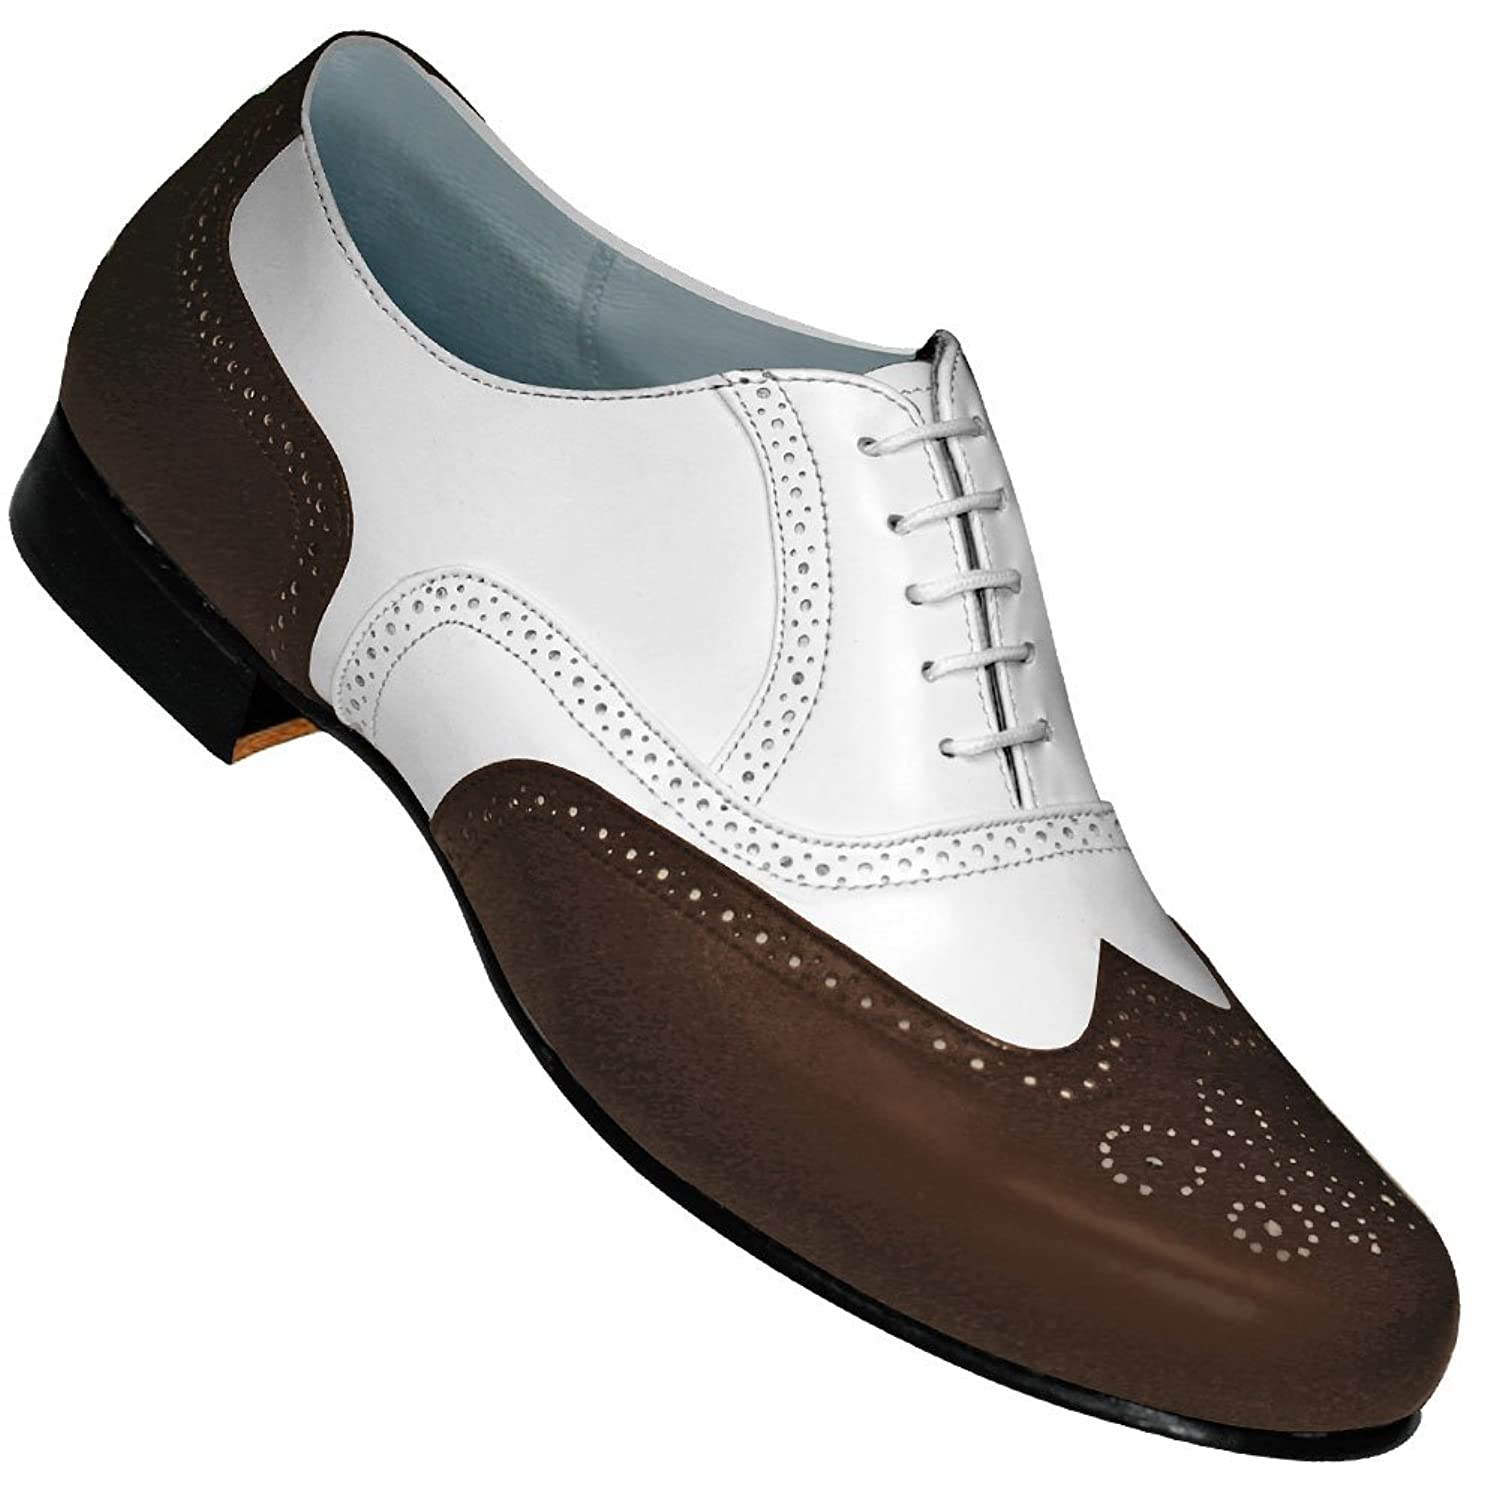 1940s Style Mens Shoes Aris Allen Mens 1930s Brown and White Spat Style Wingtip Dance Shoe $48.95 AT vintagedancer.com